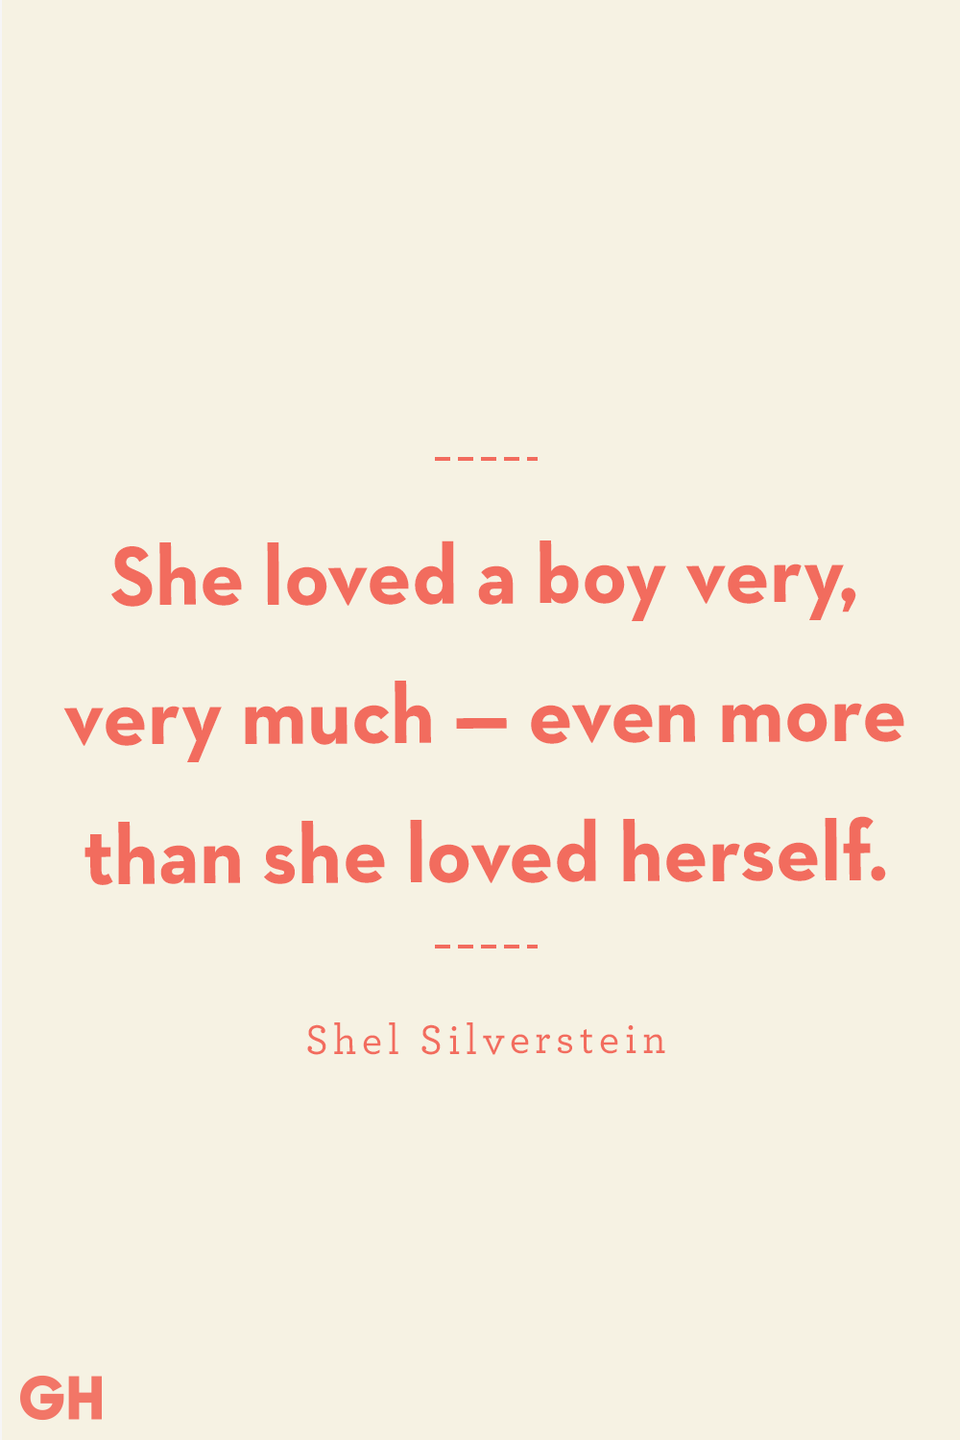 <p>She loved a boy very, very much — even more than she loved herself.</p>